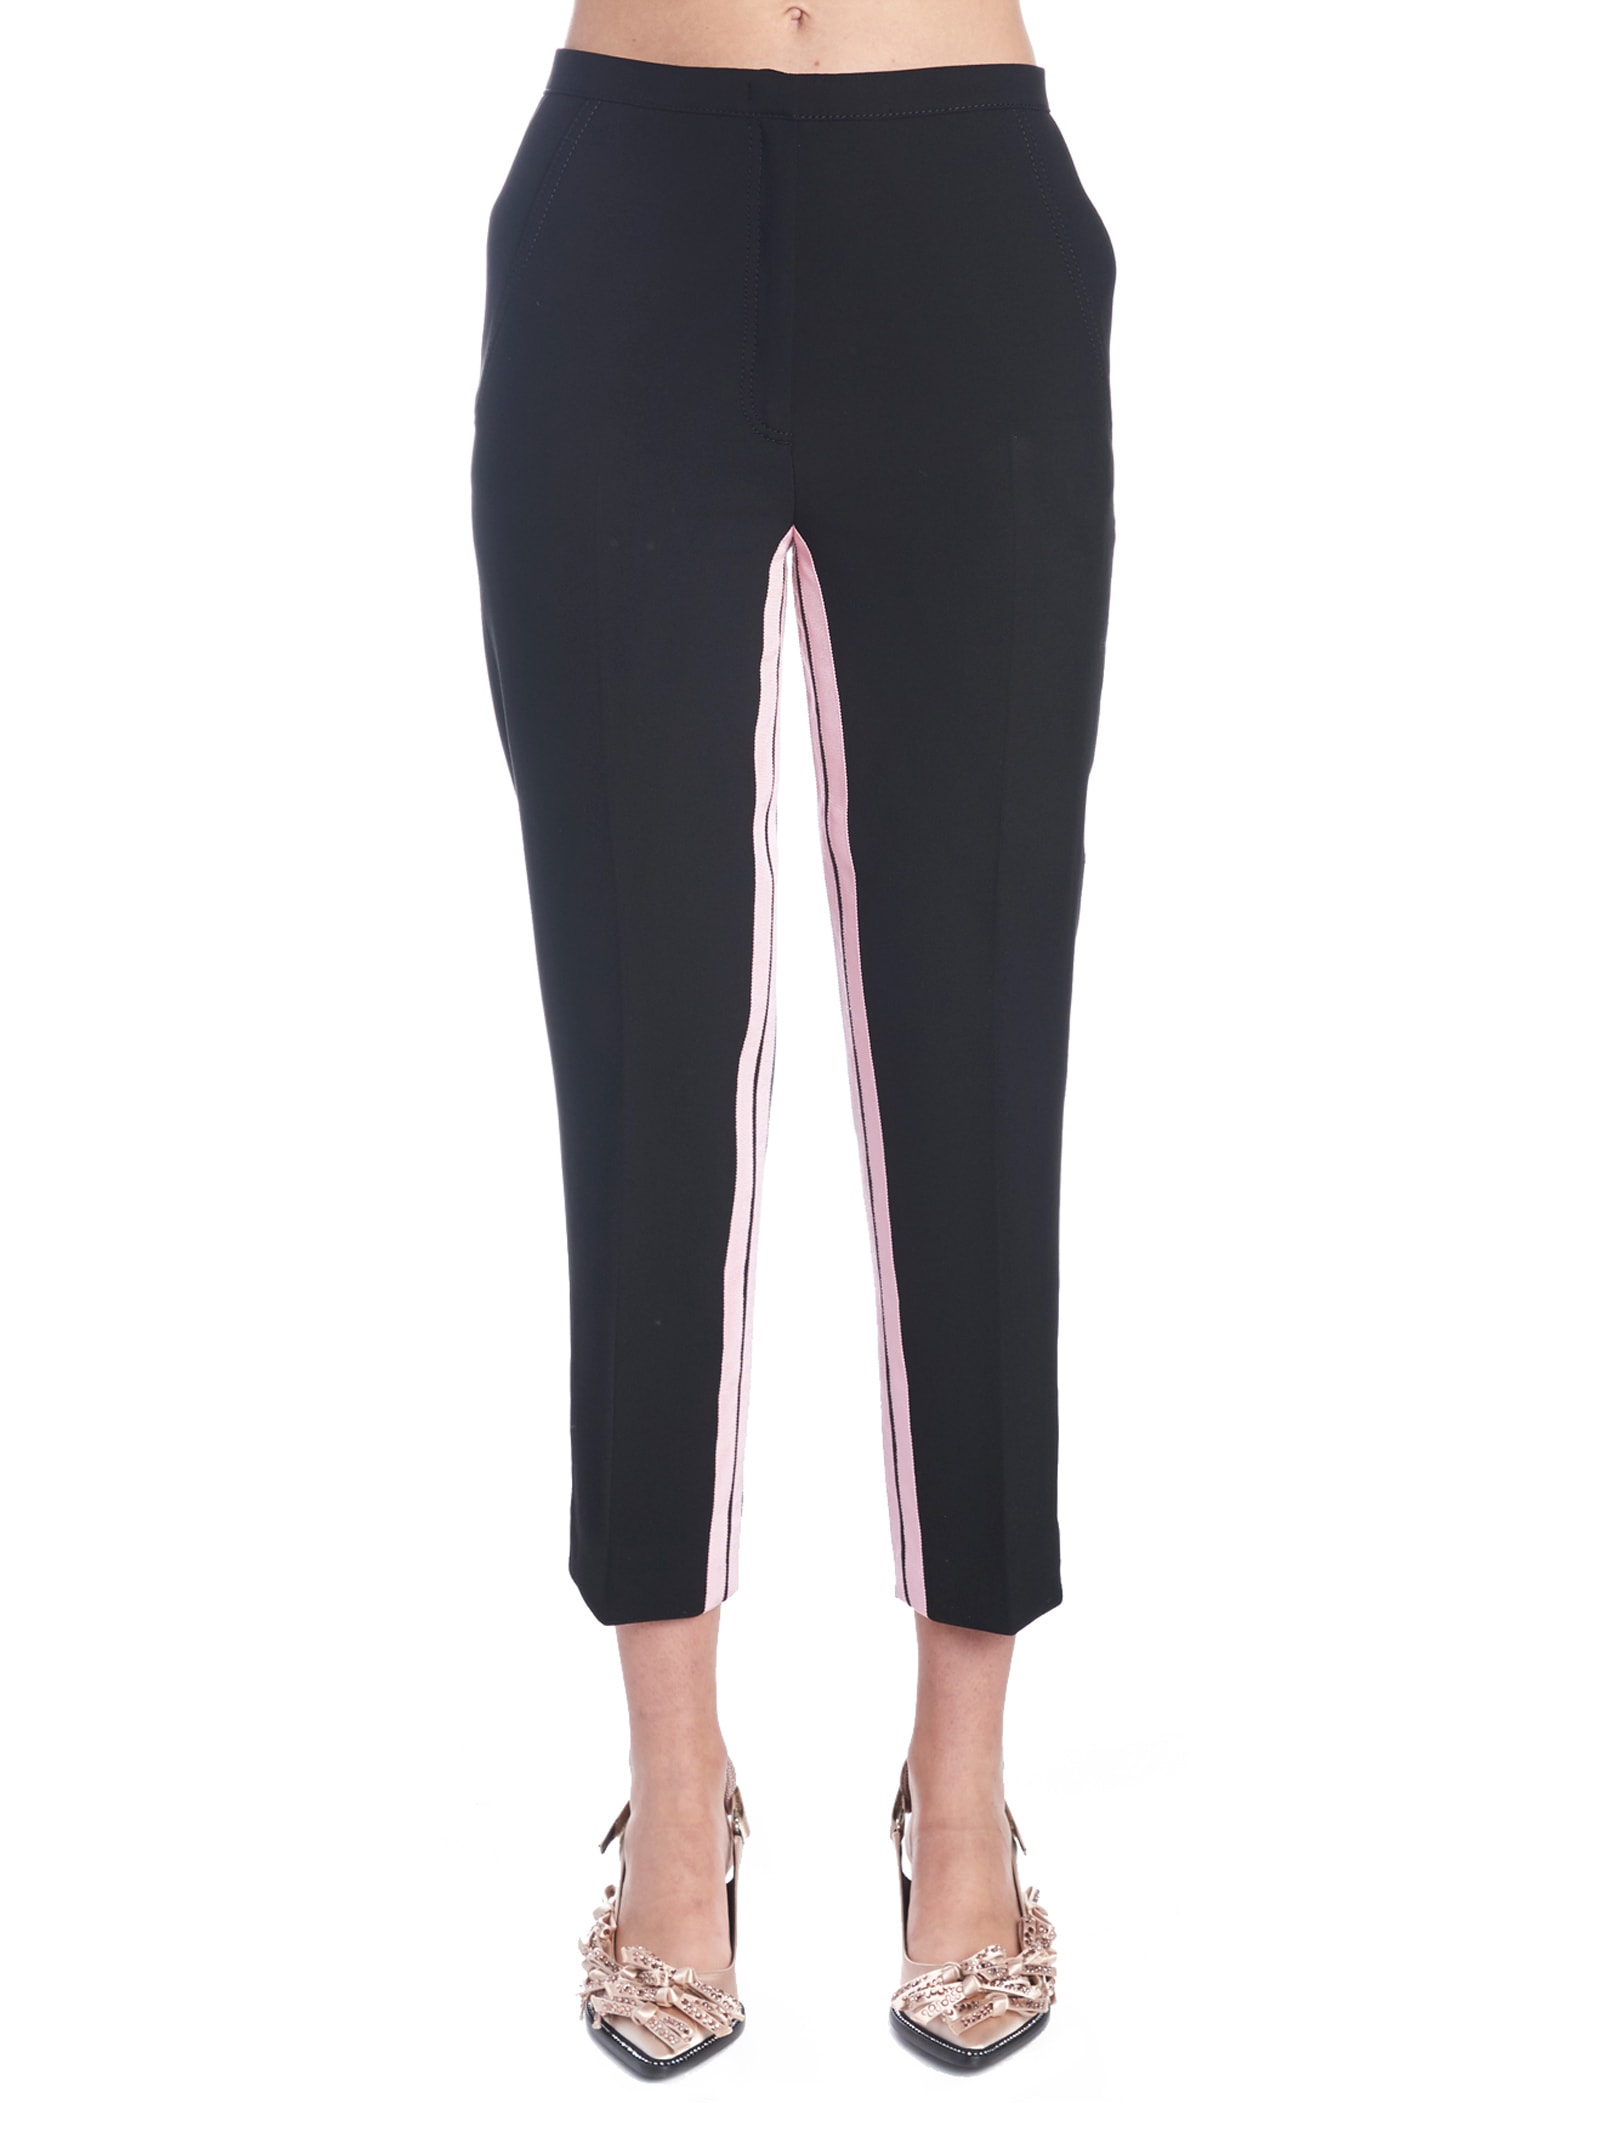 Pants From N 21: Polyester Contrasting Bands PantsComposition: 63% pl, 27% vi, 7% co, 3% ea